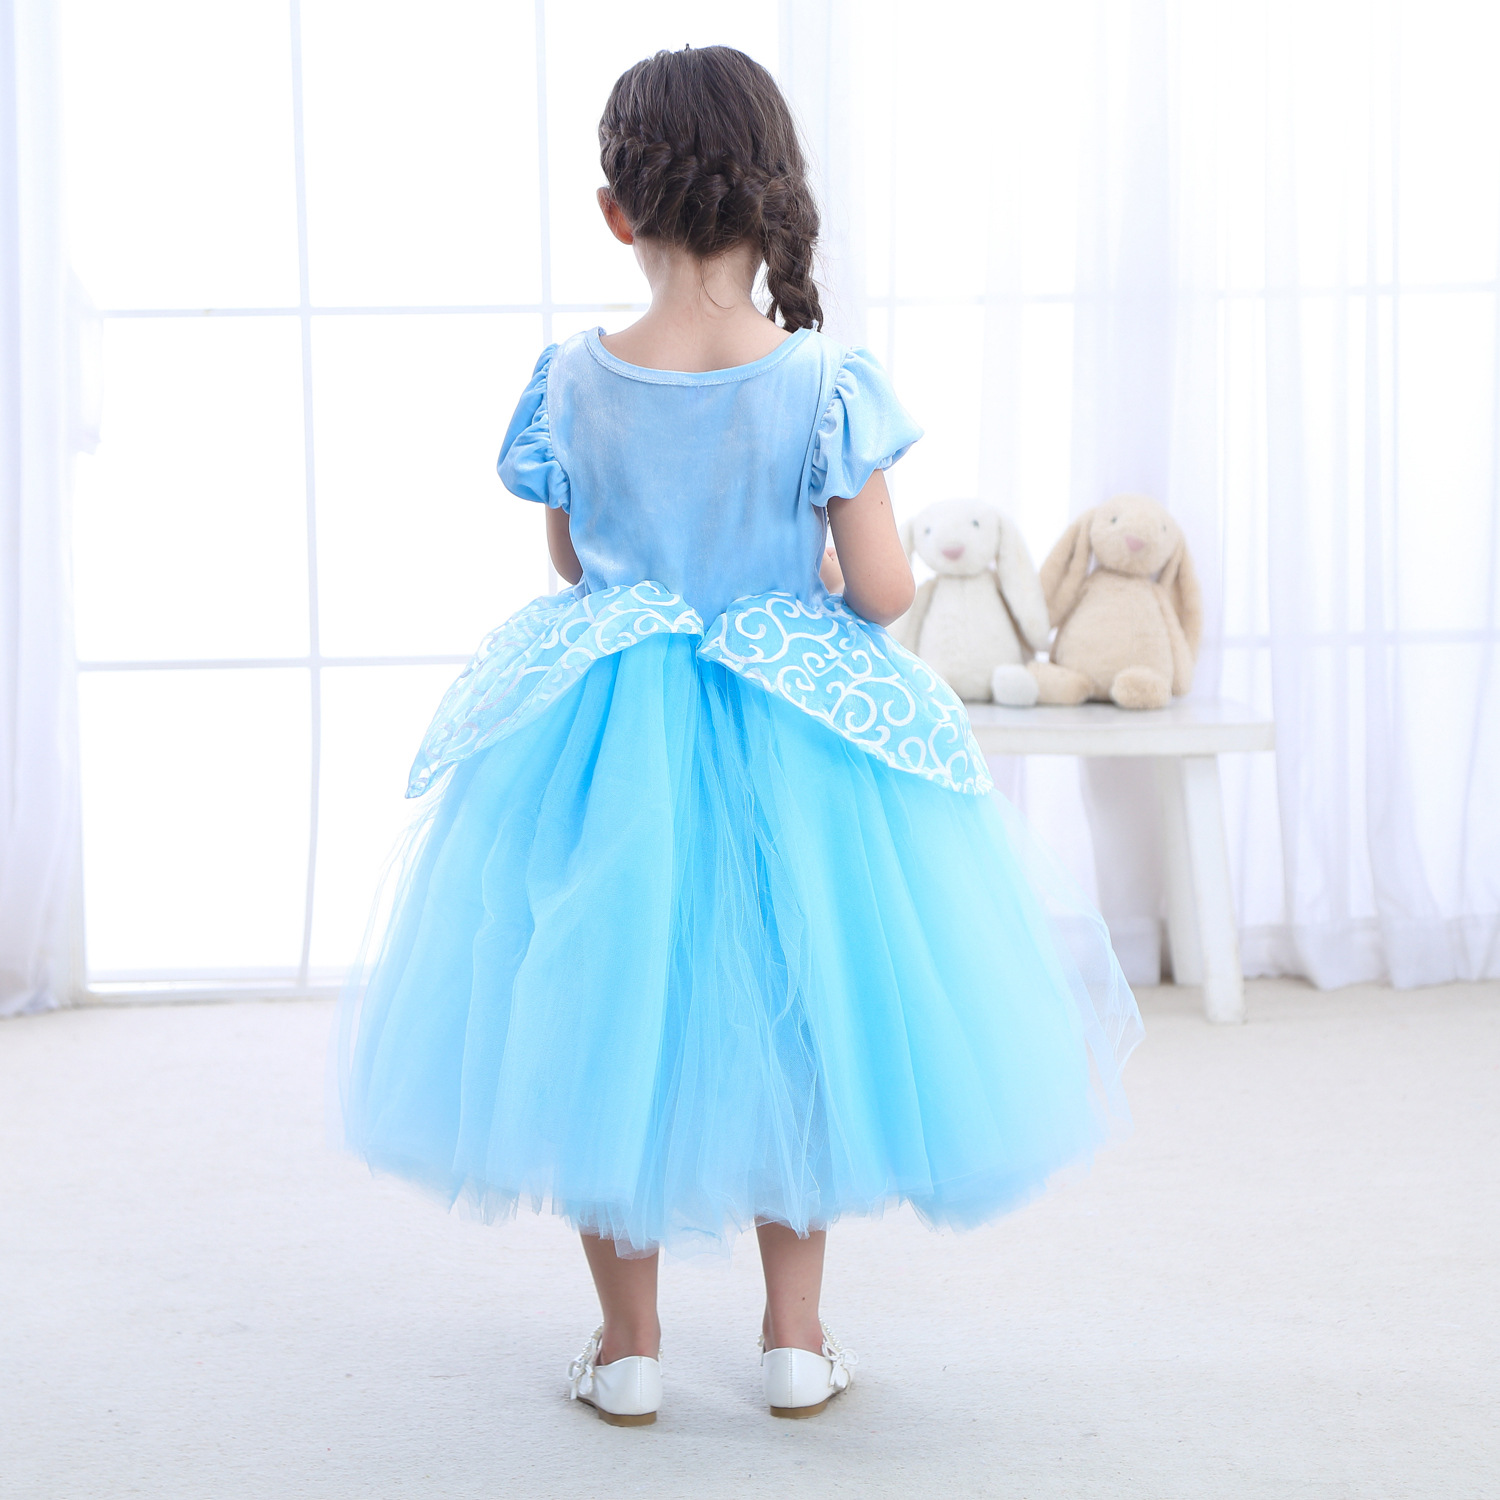 christmas New Year Children Party Dresses For Girls Elsa Dress Princess Cinderella Cosplay Costume Baby Kids Clothing in Girls Costumes from Novelty Special Use